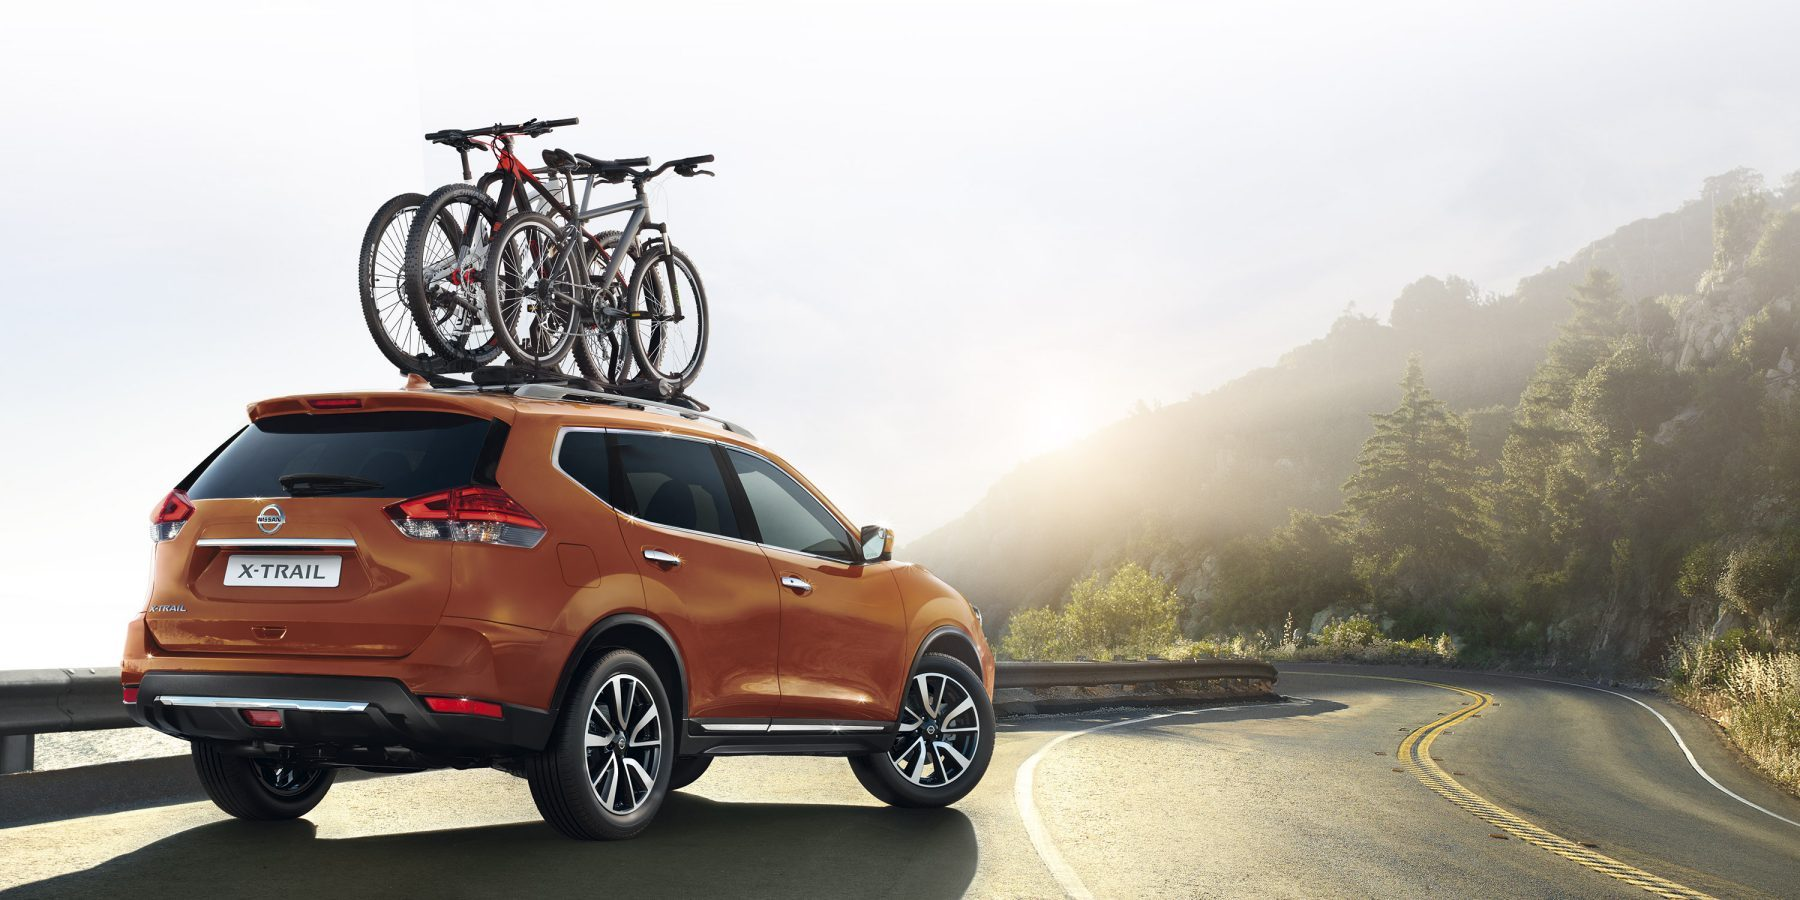 Suv 7 Places Trail X Nissan PgYxC6